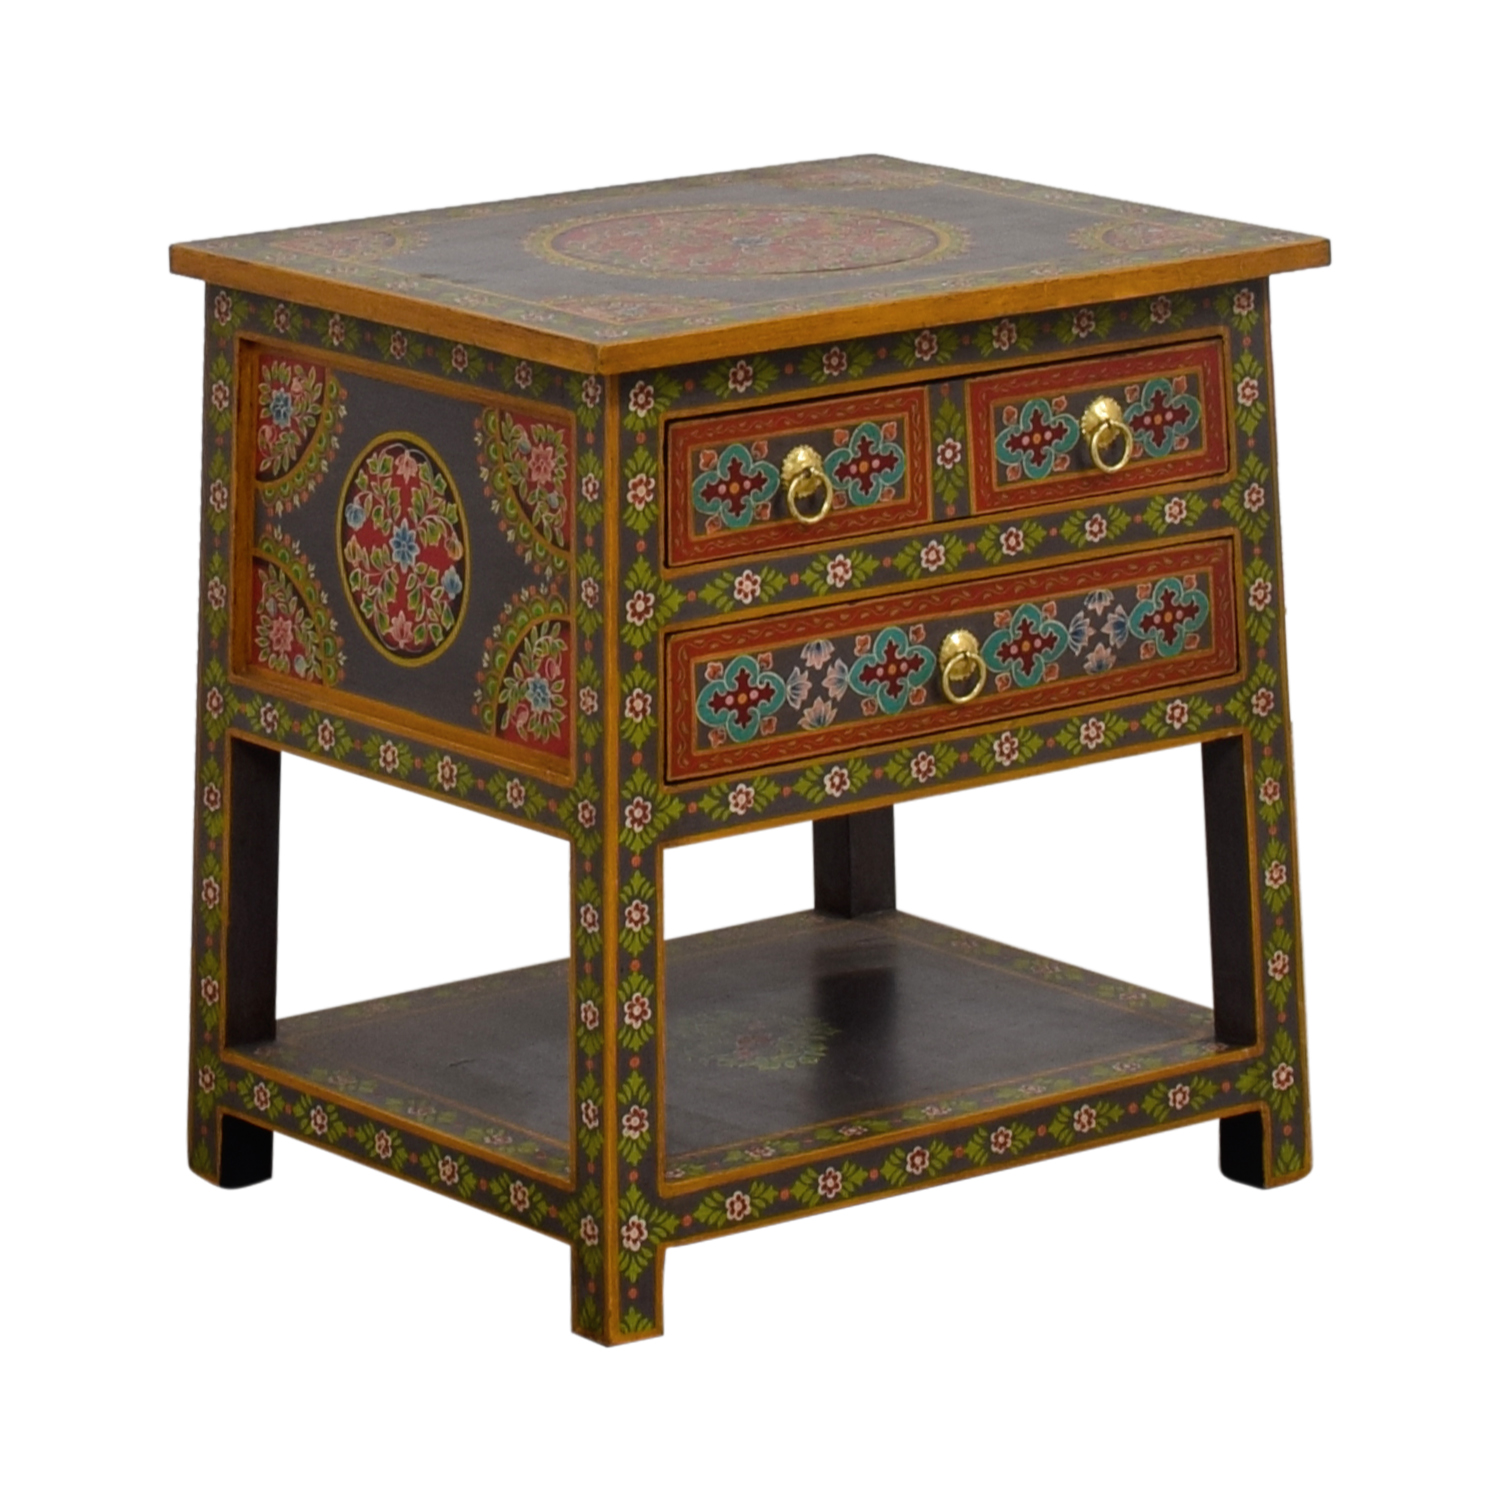 off world market wood floral painted two drawer accent table second hand pottery barn flower tables dale tiffany glass outdoor sofa mid century furniture seater marble dining